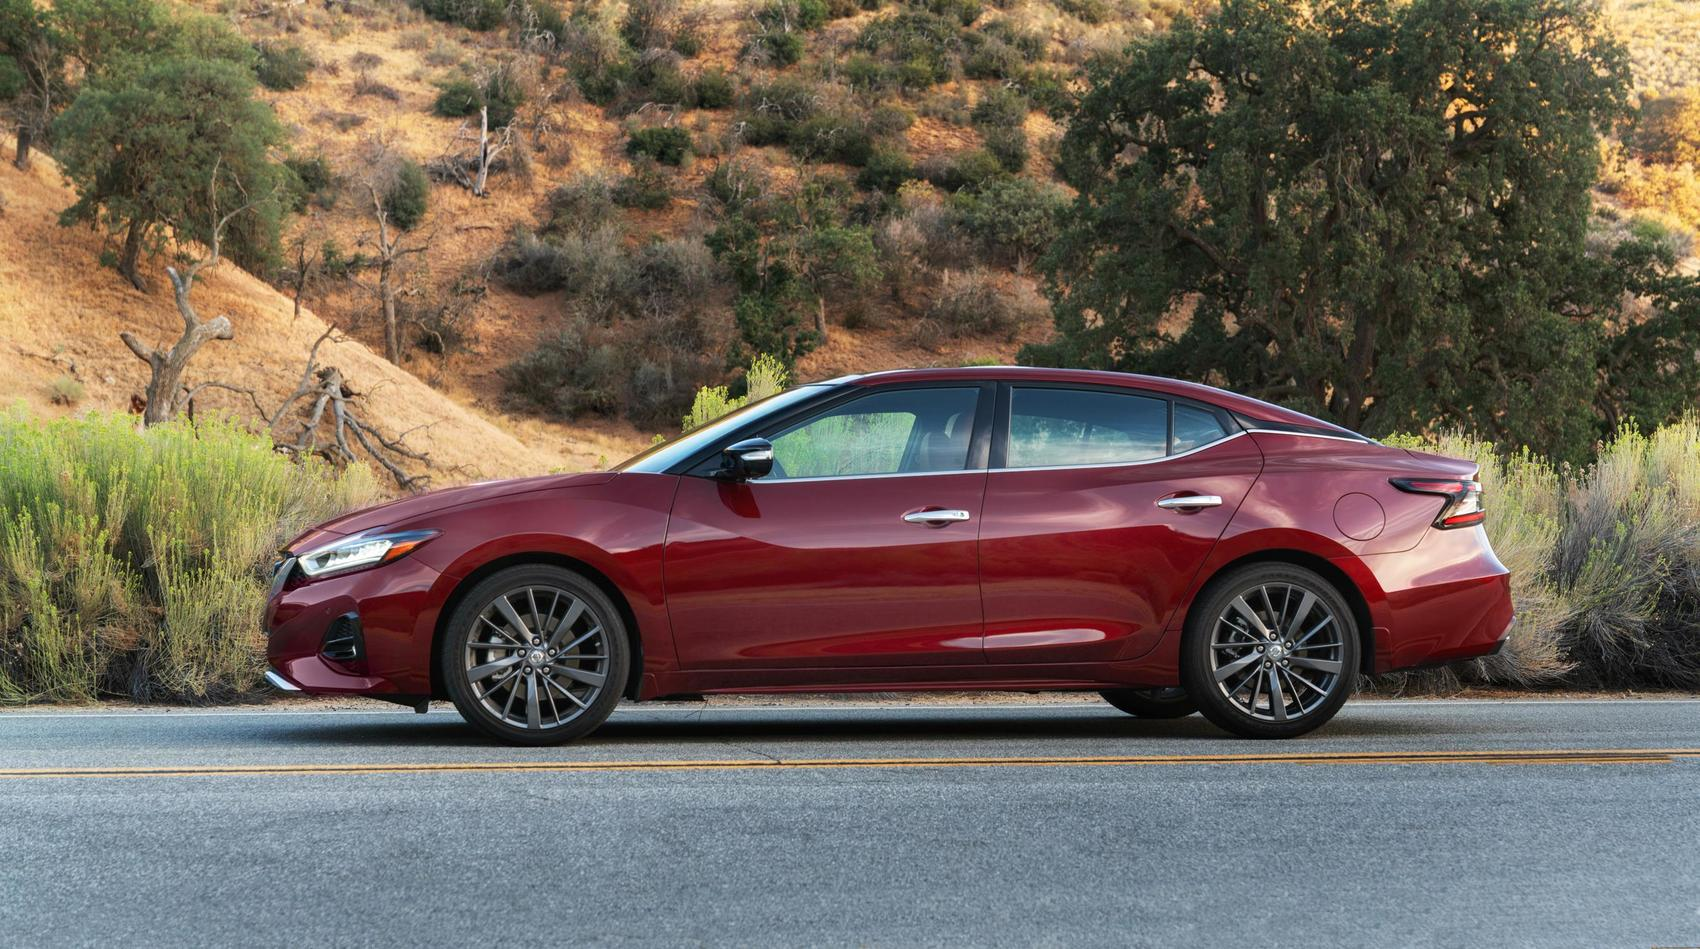 2019 Nissan Maxima: Athletic. Luxurious. But Too Expensive?